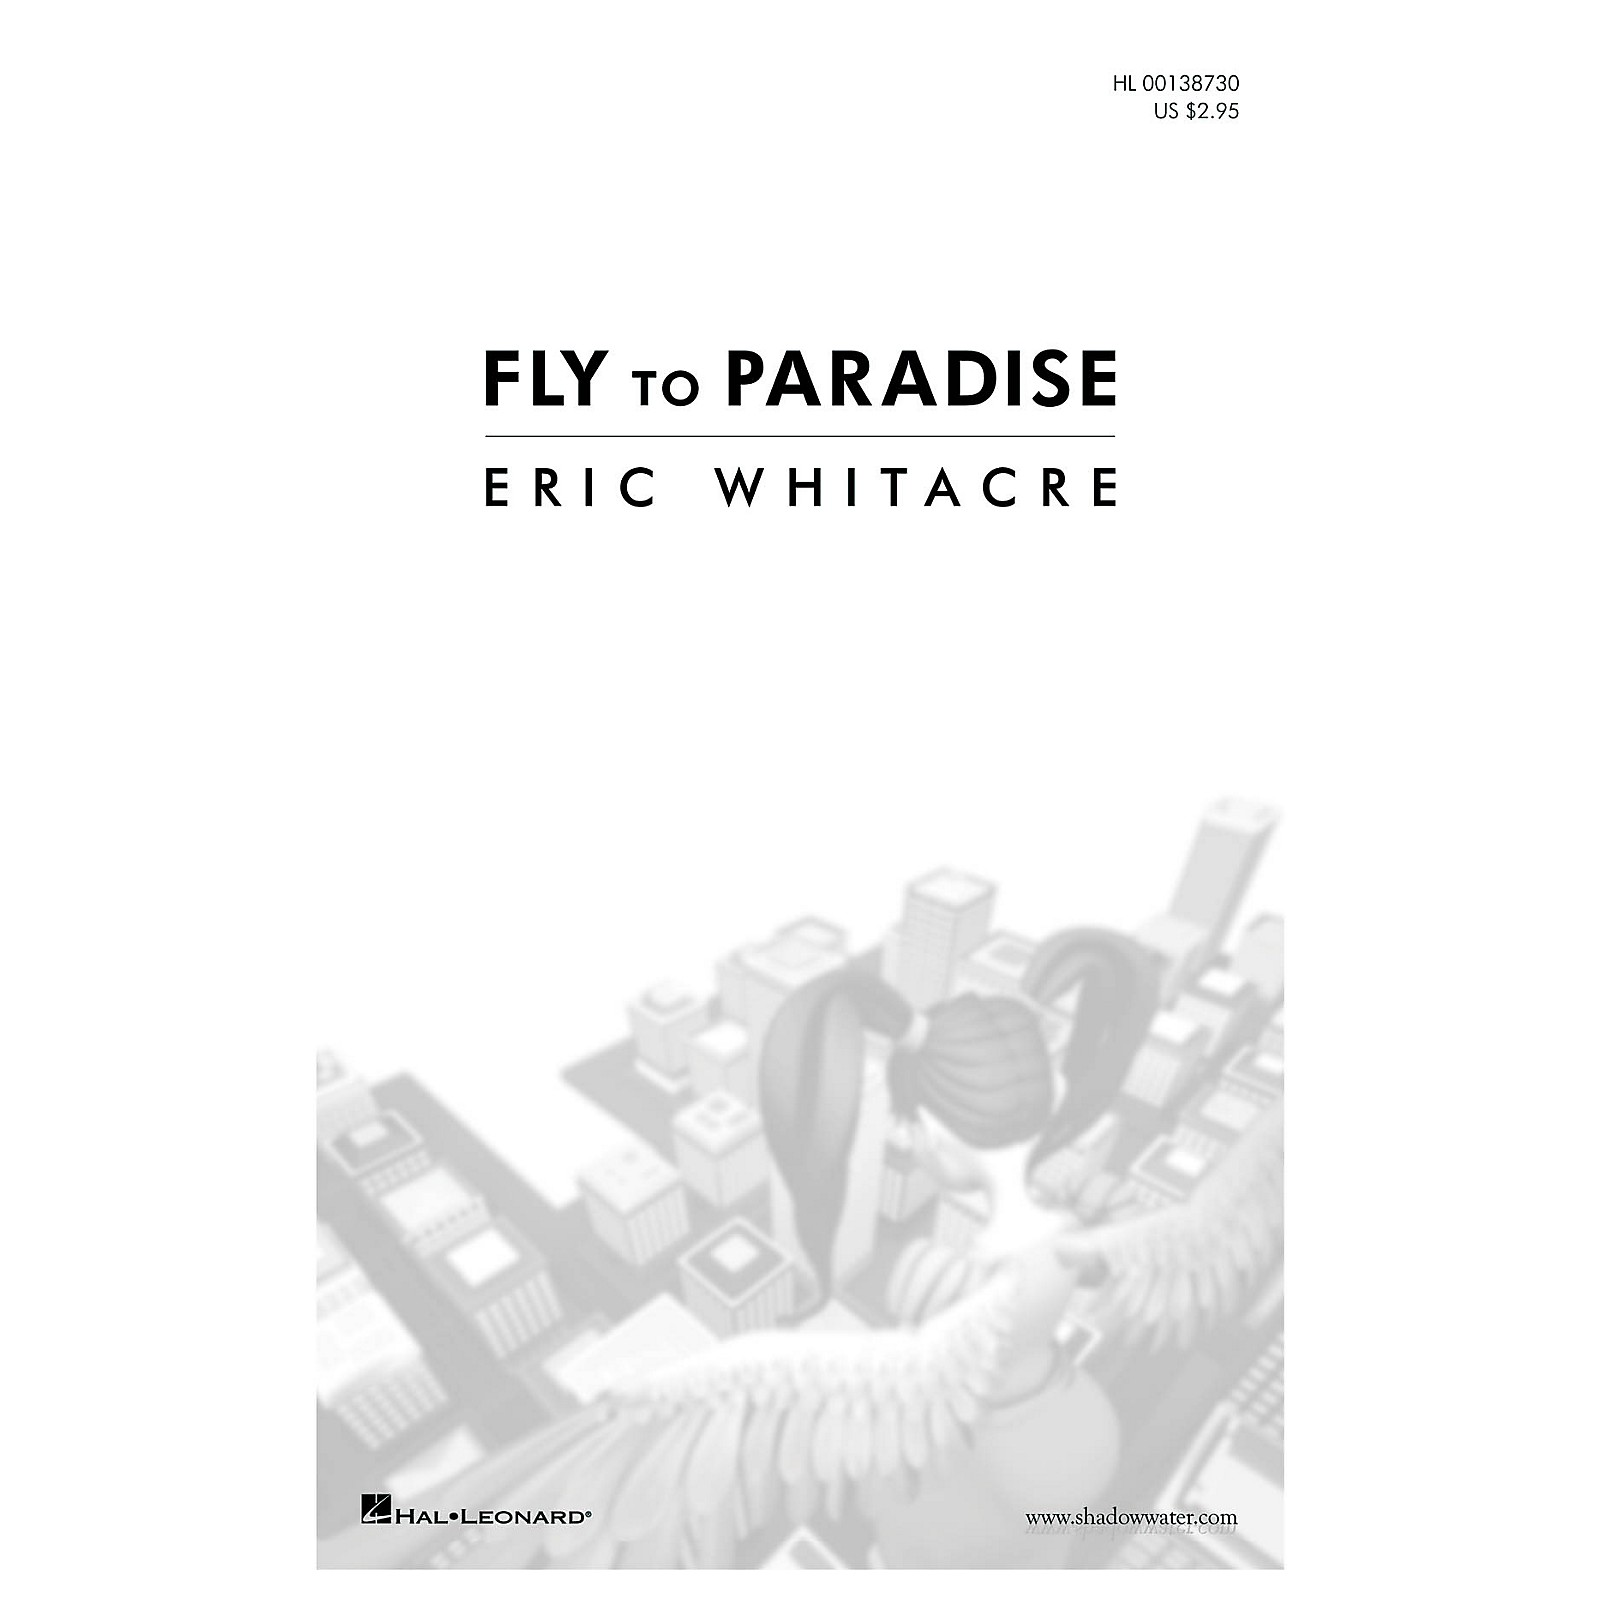 Hal Leonard Fly to Paradise (SATB divisi a cappella) SATB Divisi composed by Eric Whitacre